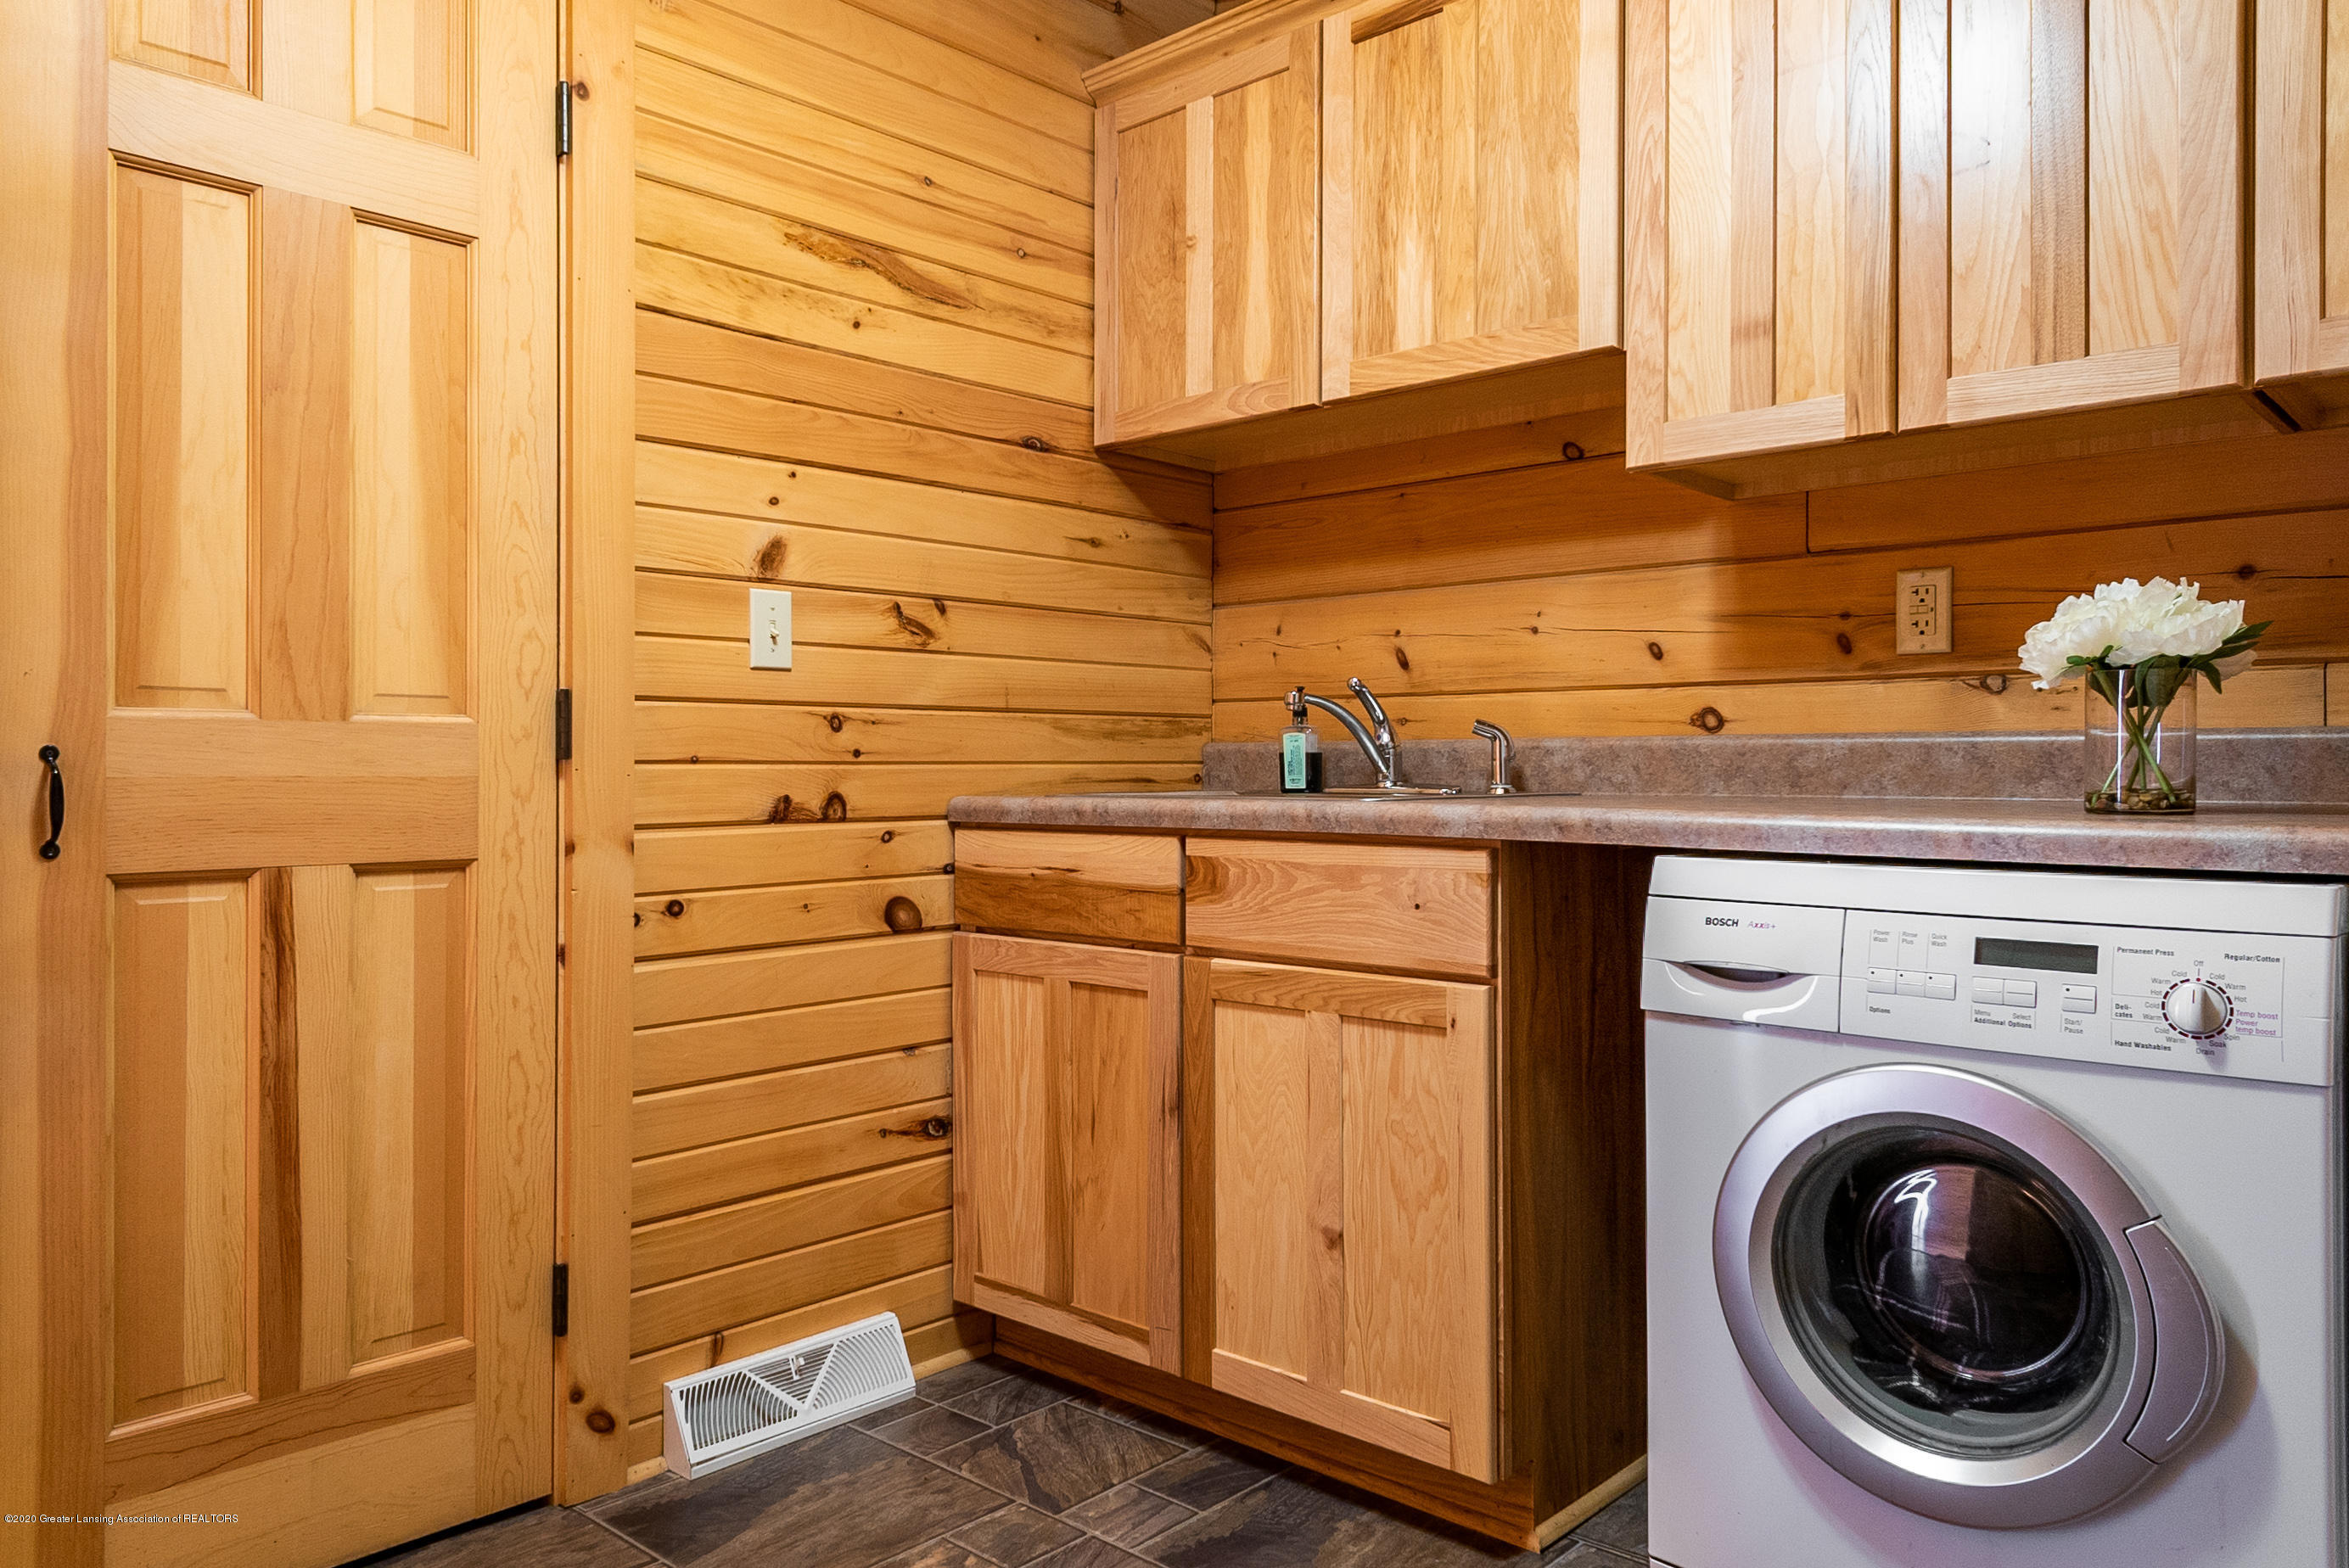 6208 Halsey Rd - Laundry Room - 21